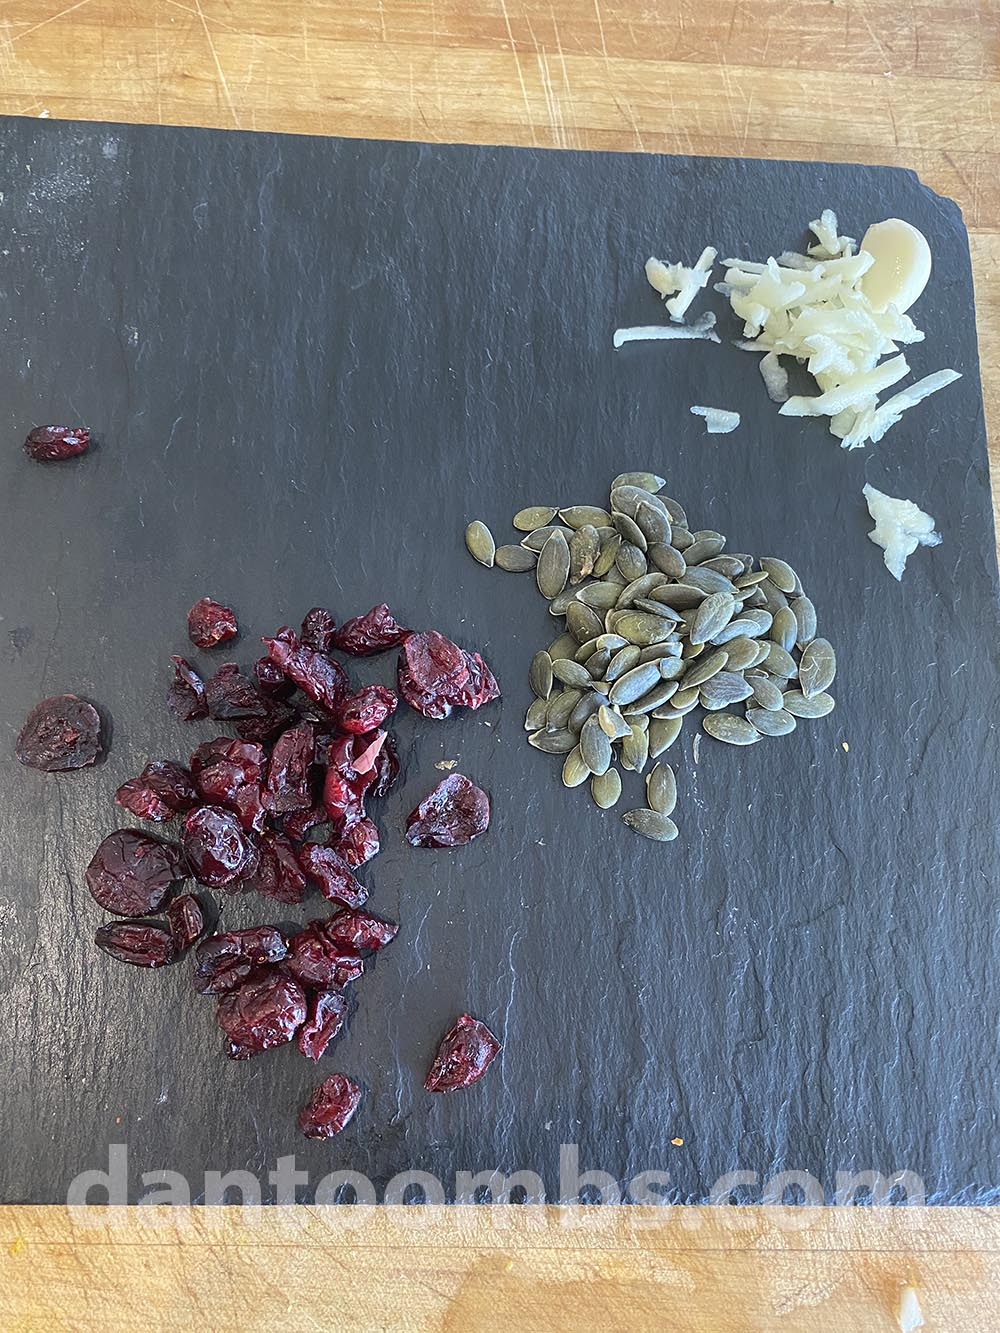 garlic cranberries and pine nuts